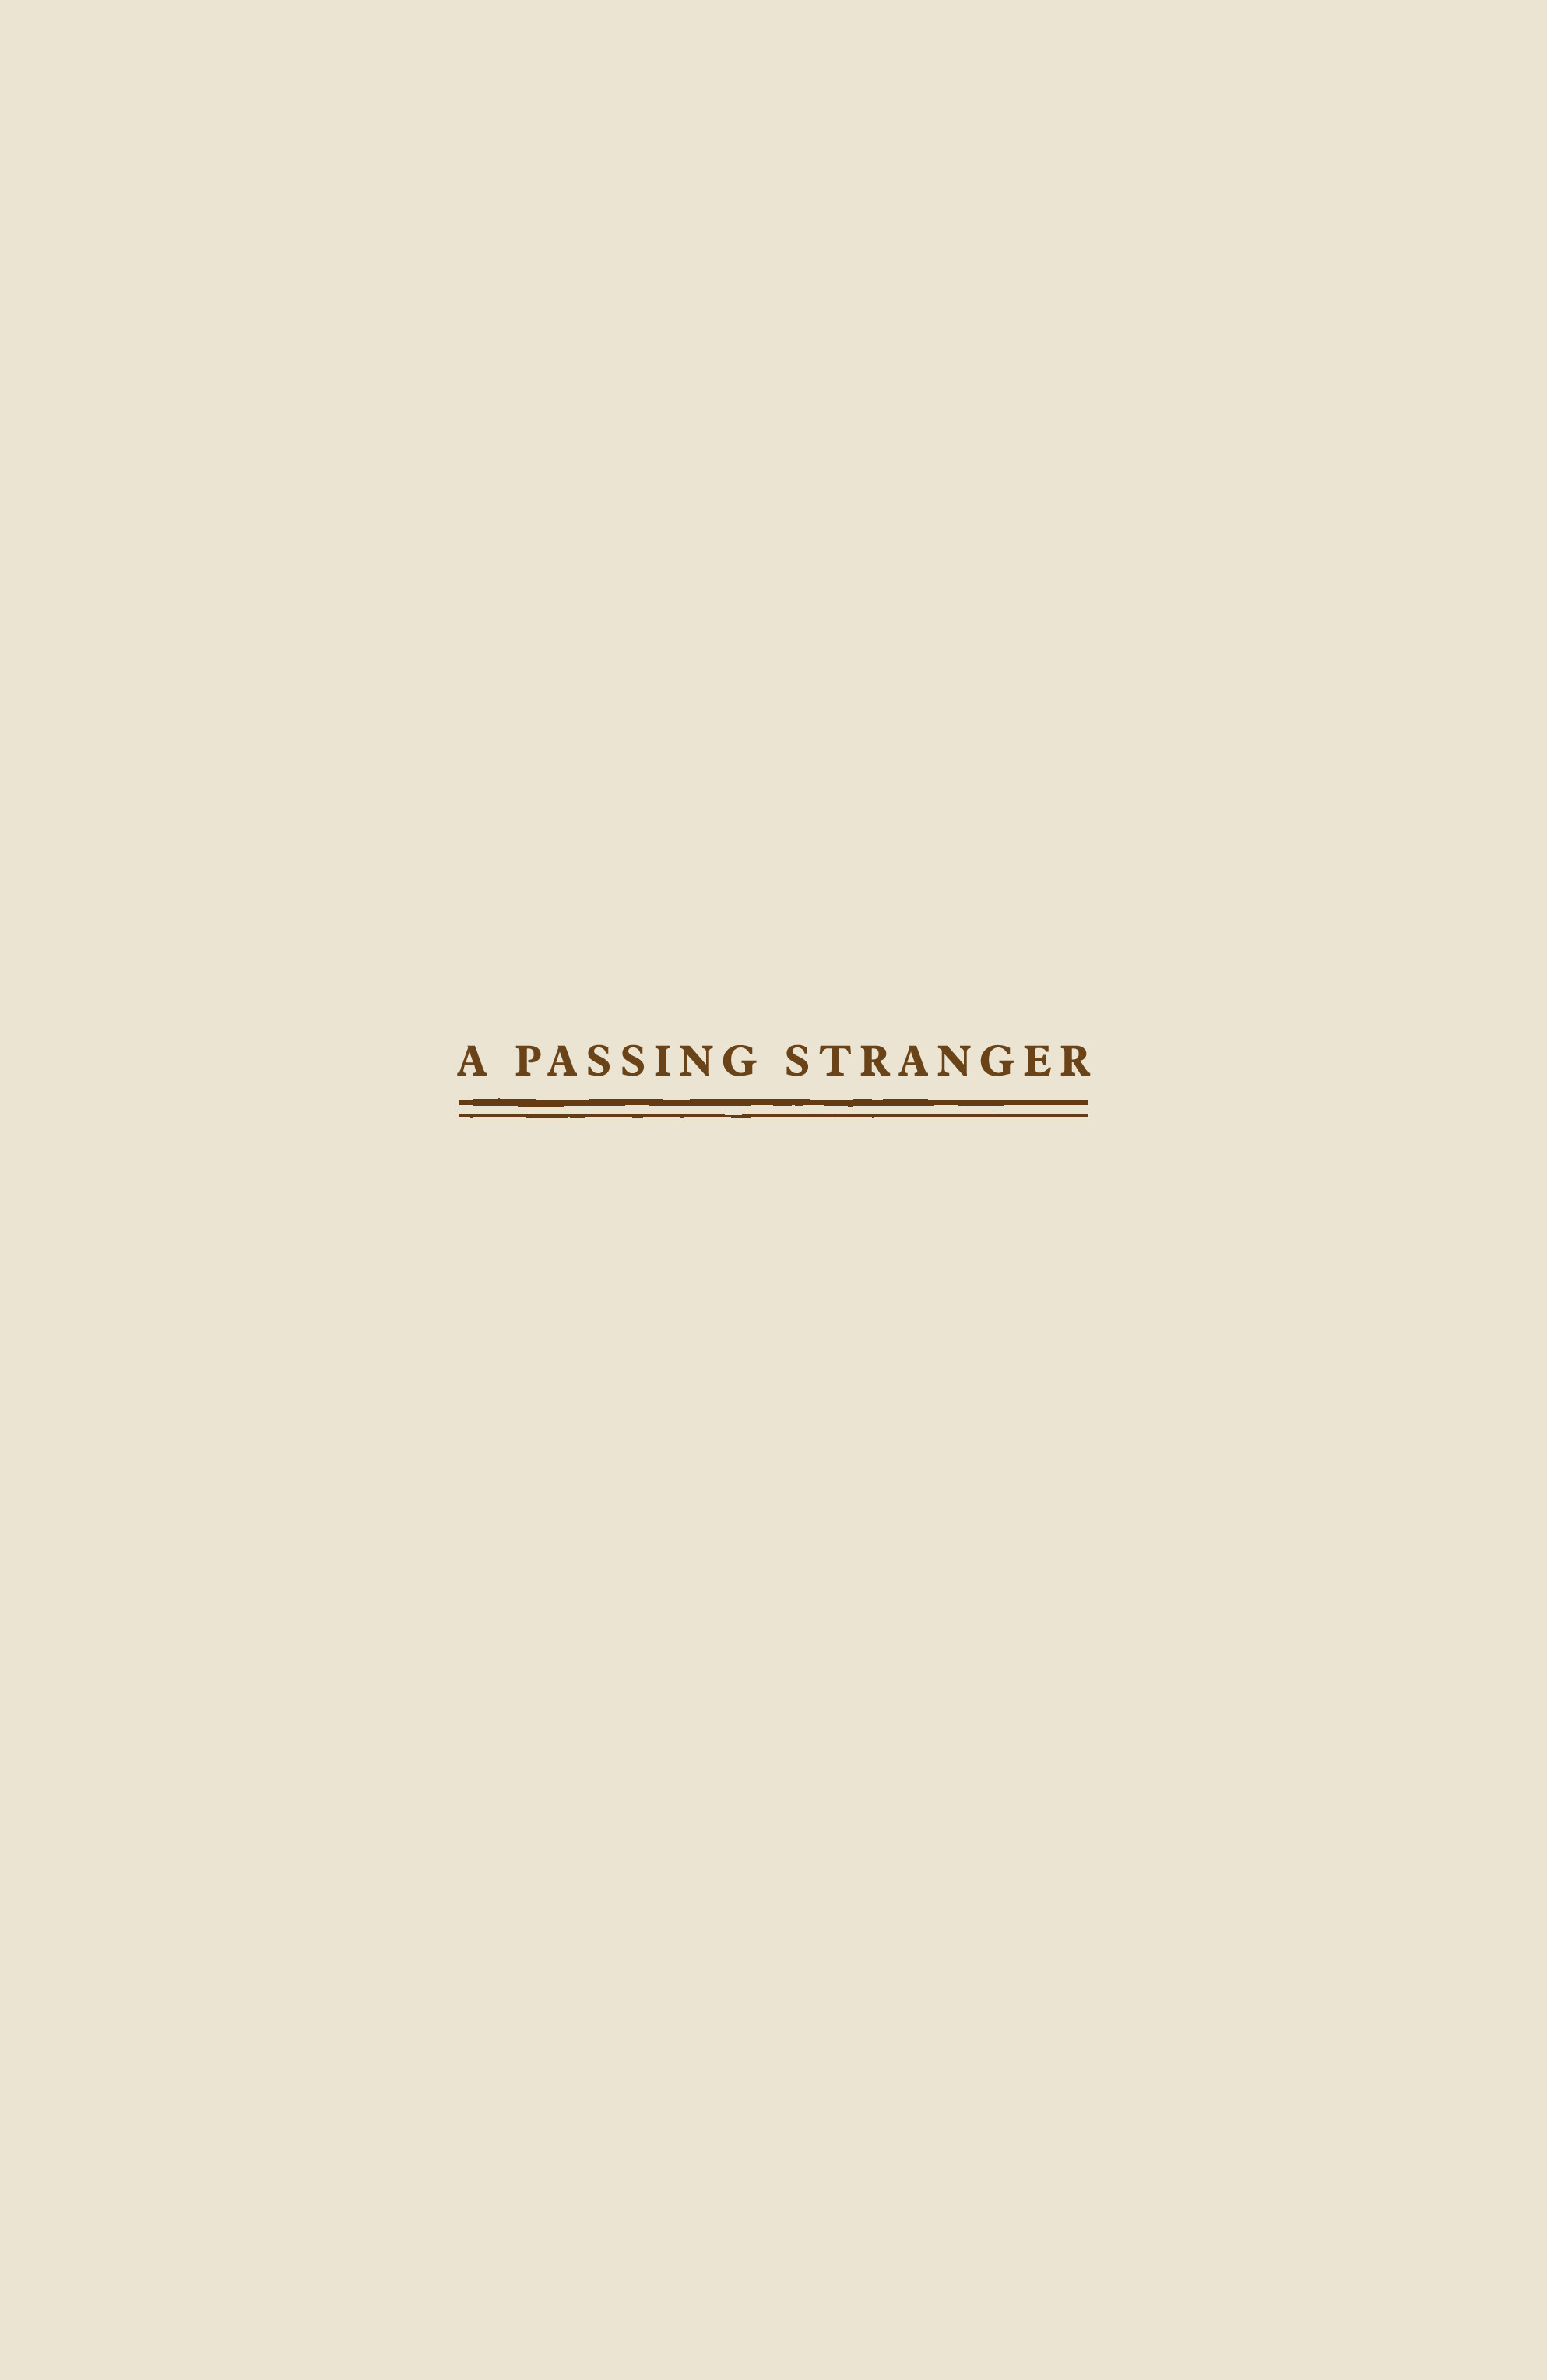 Read online Baltimore Volume 3: A Passing Stranger and Other Stories comic -  Issue # Full - 33